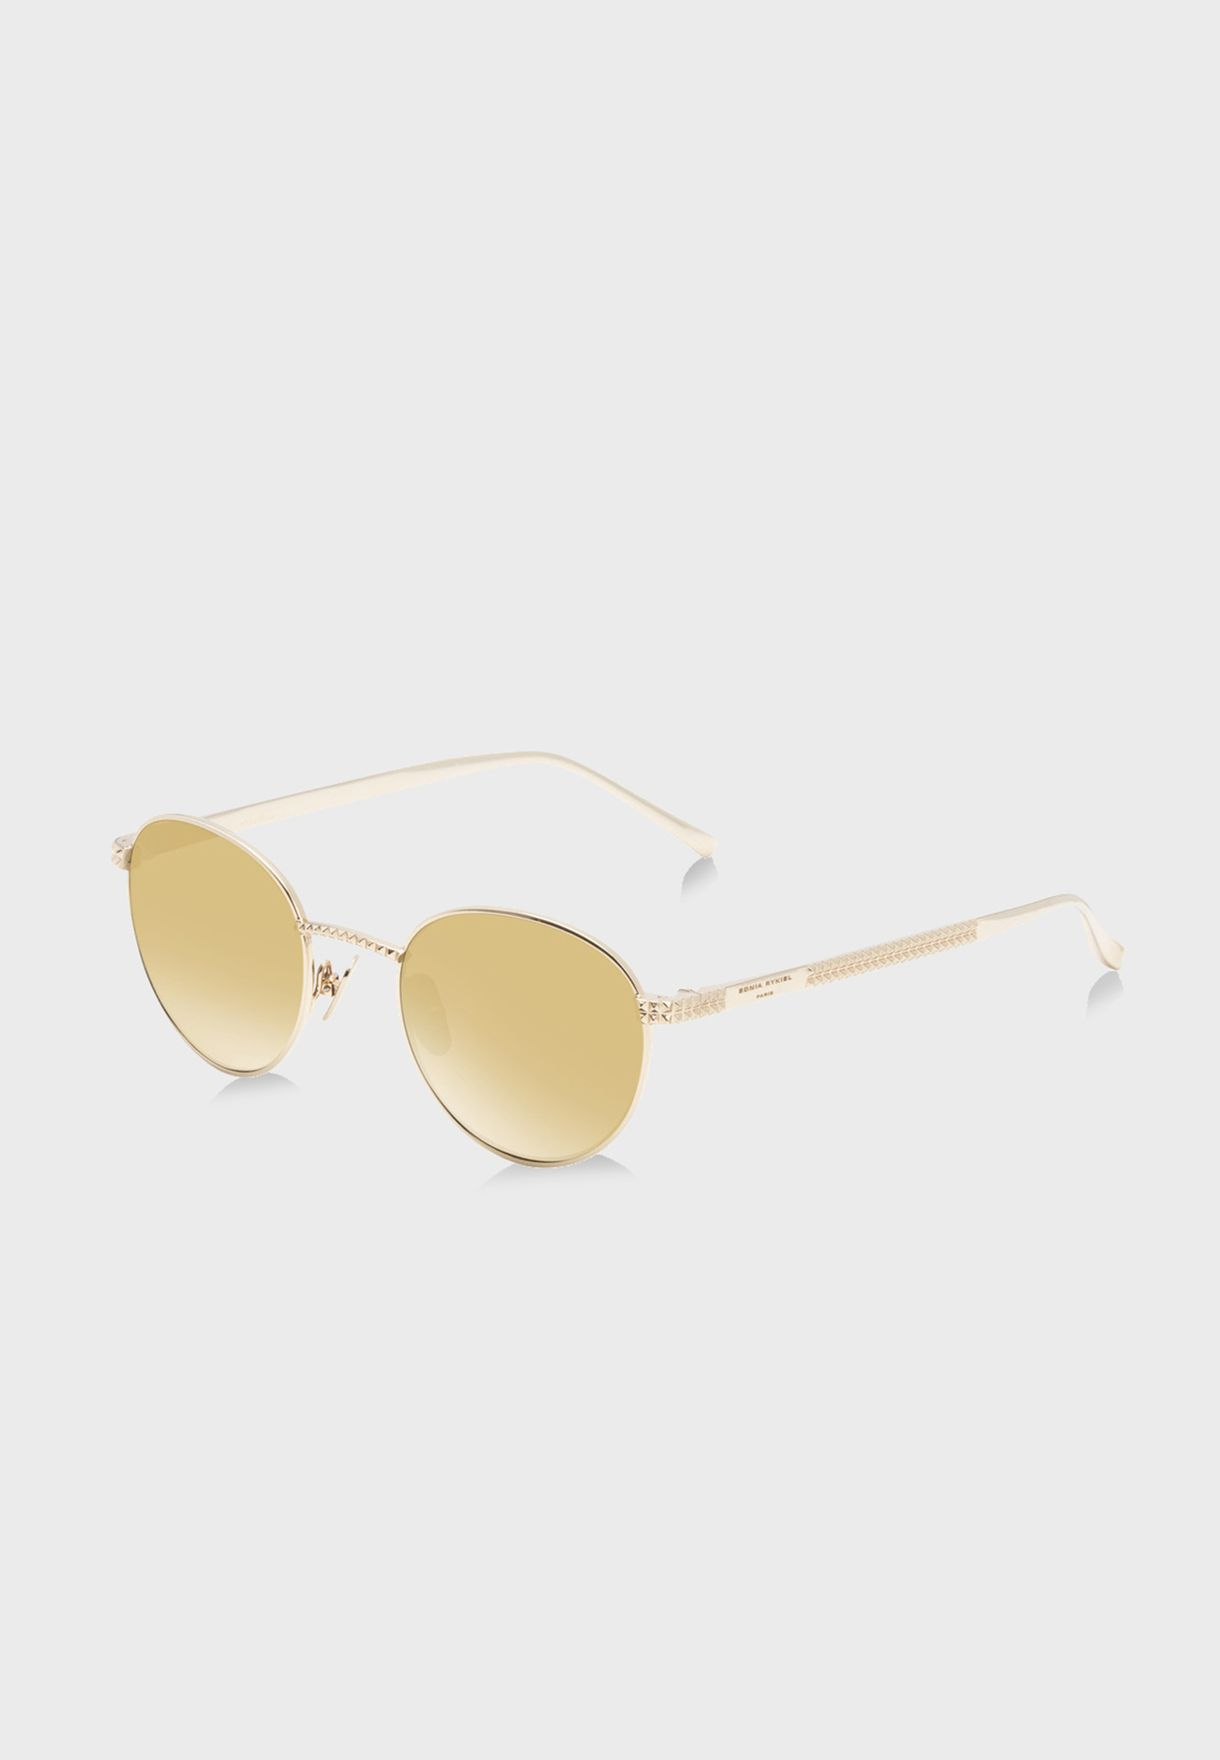 L SR776001 Aviator Sunglasses